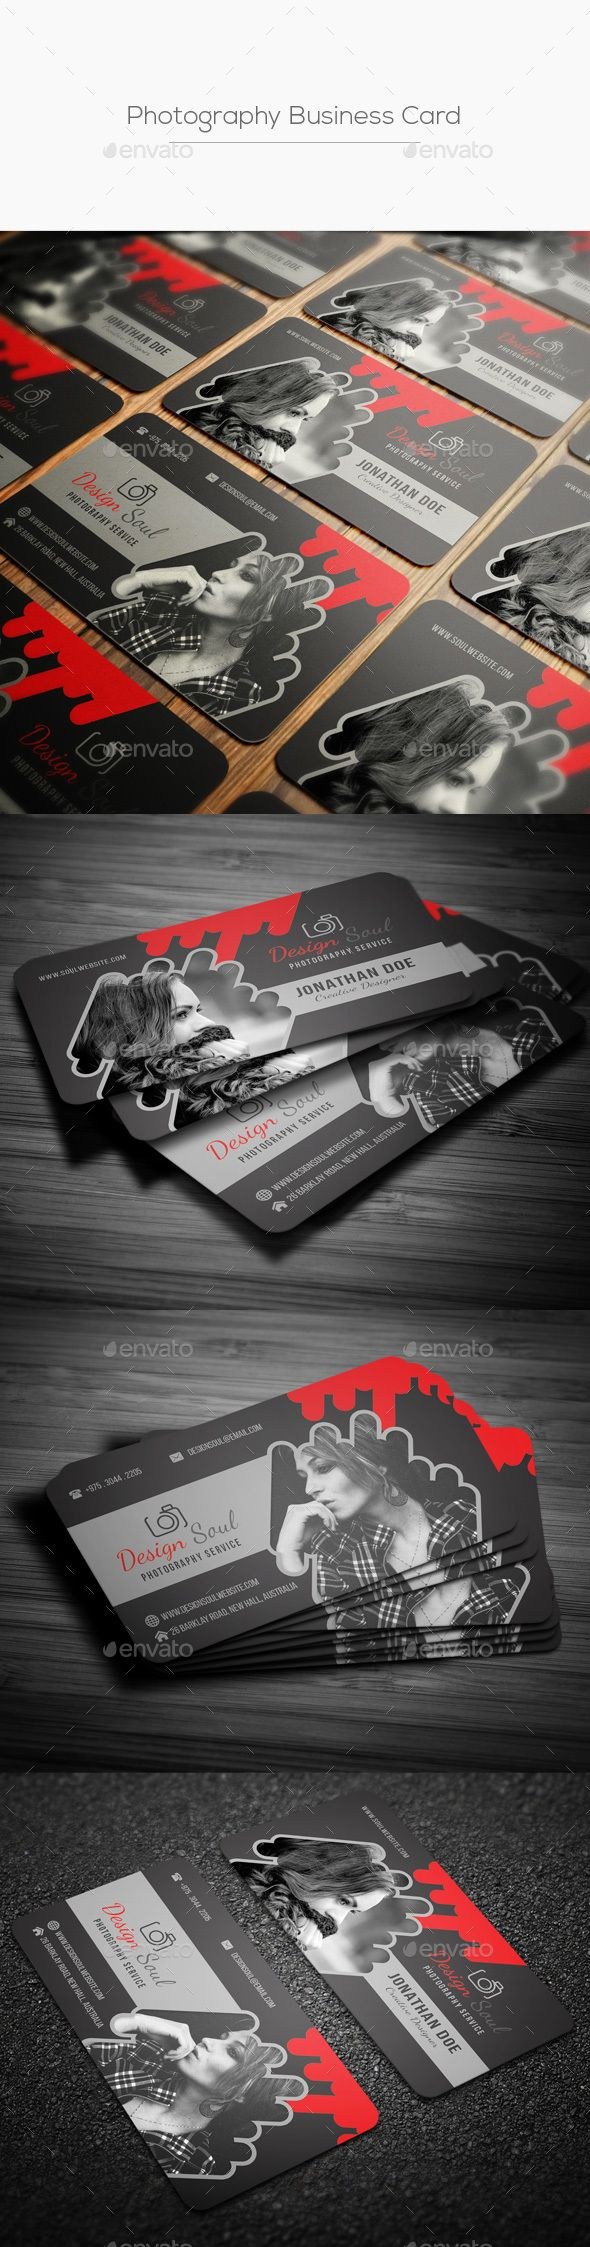 Photography business card pinterest photography business cards photography business card photoshop psd shot round available here httpsgraphicriveritemphotography business card20429735refpxcr reheart Choice Image